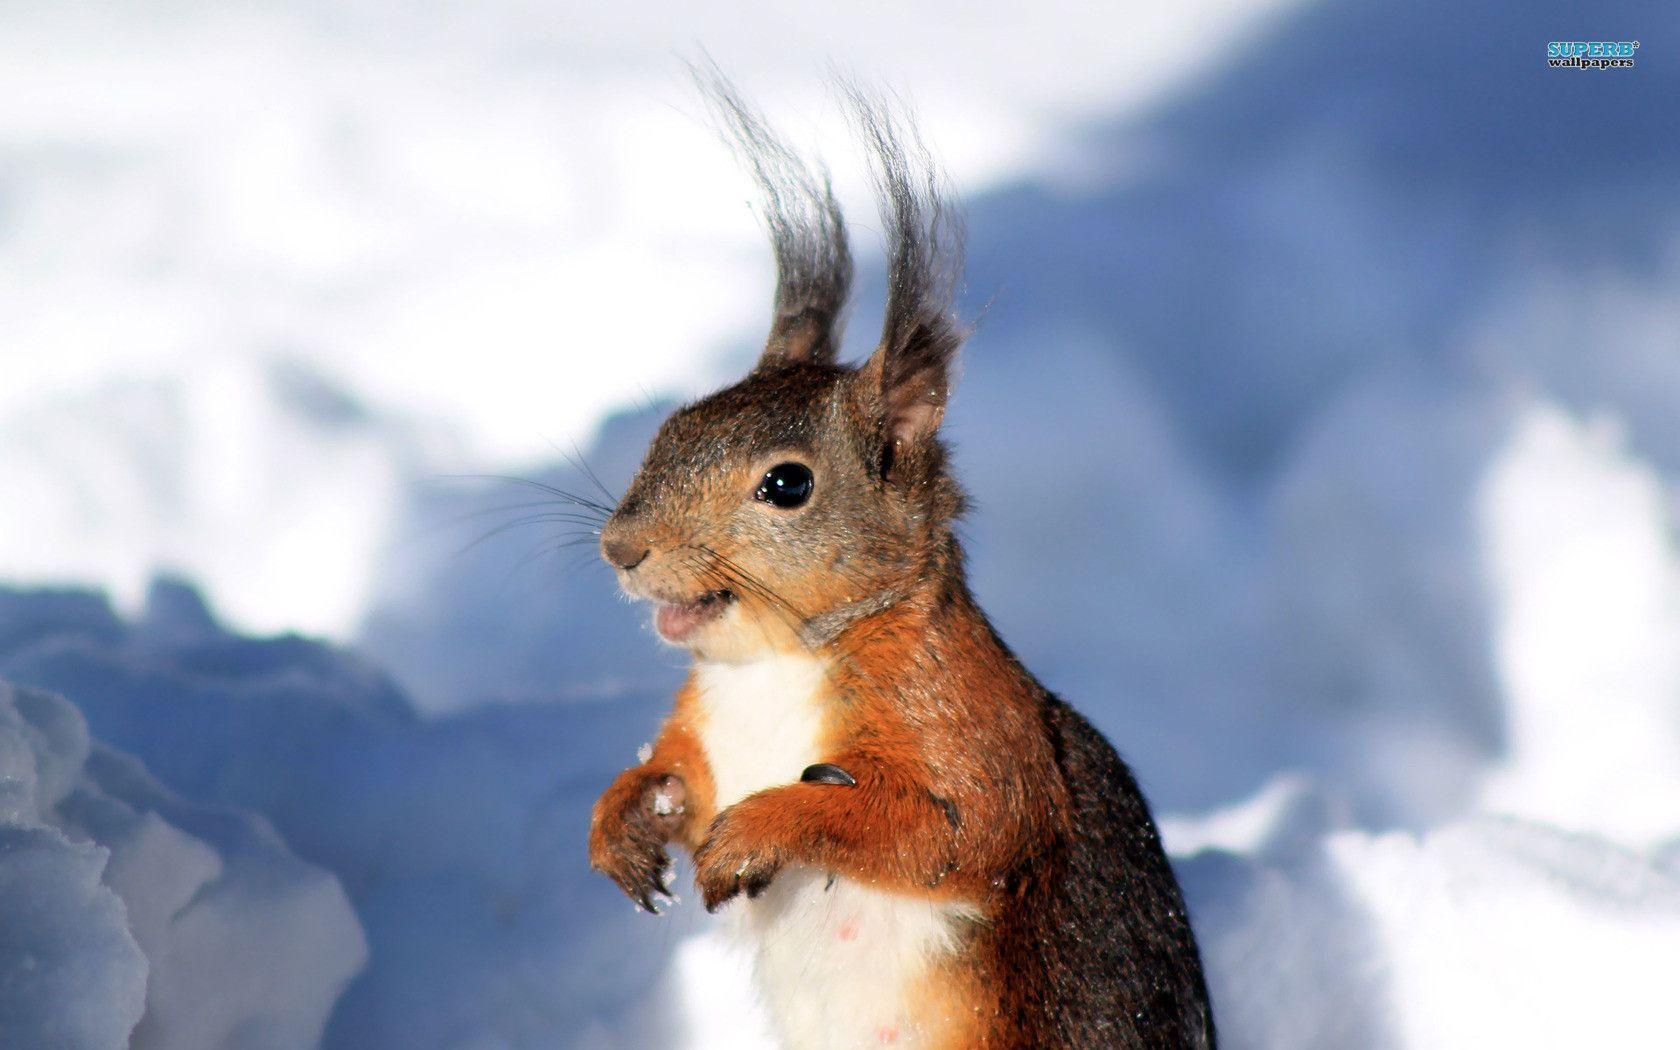 Wallpapers For > Fall Wallpapers With Squirrel